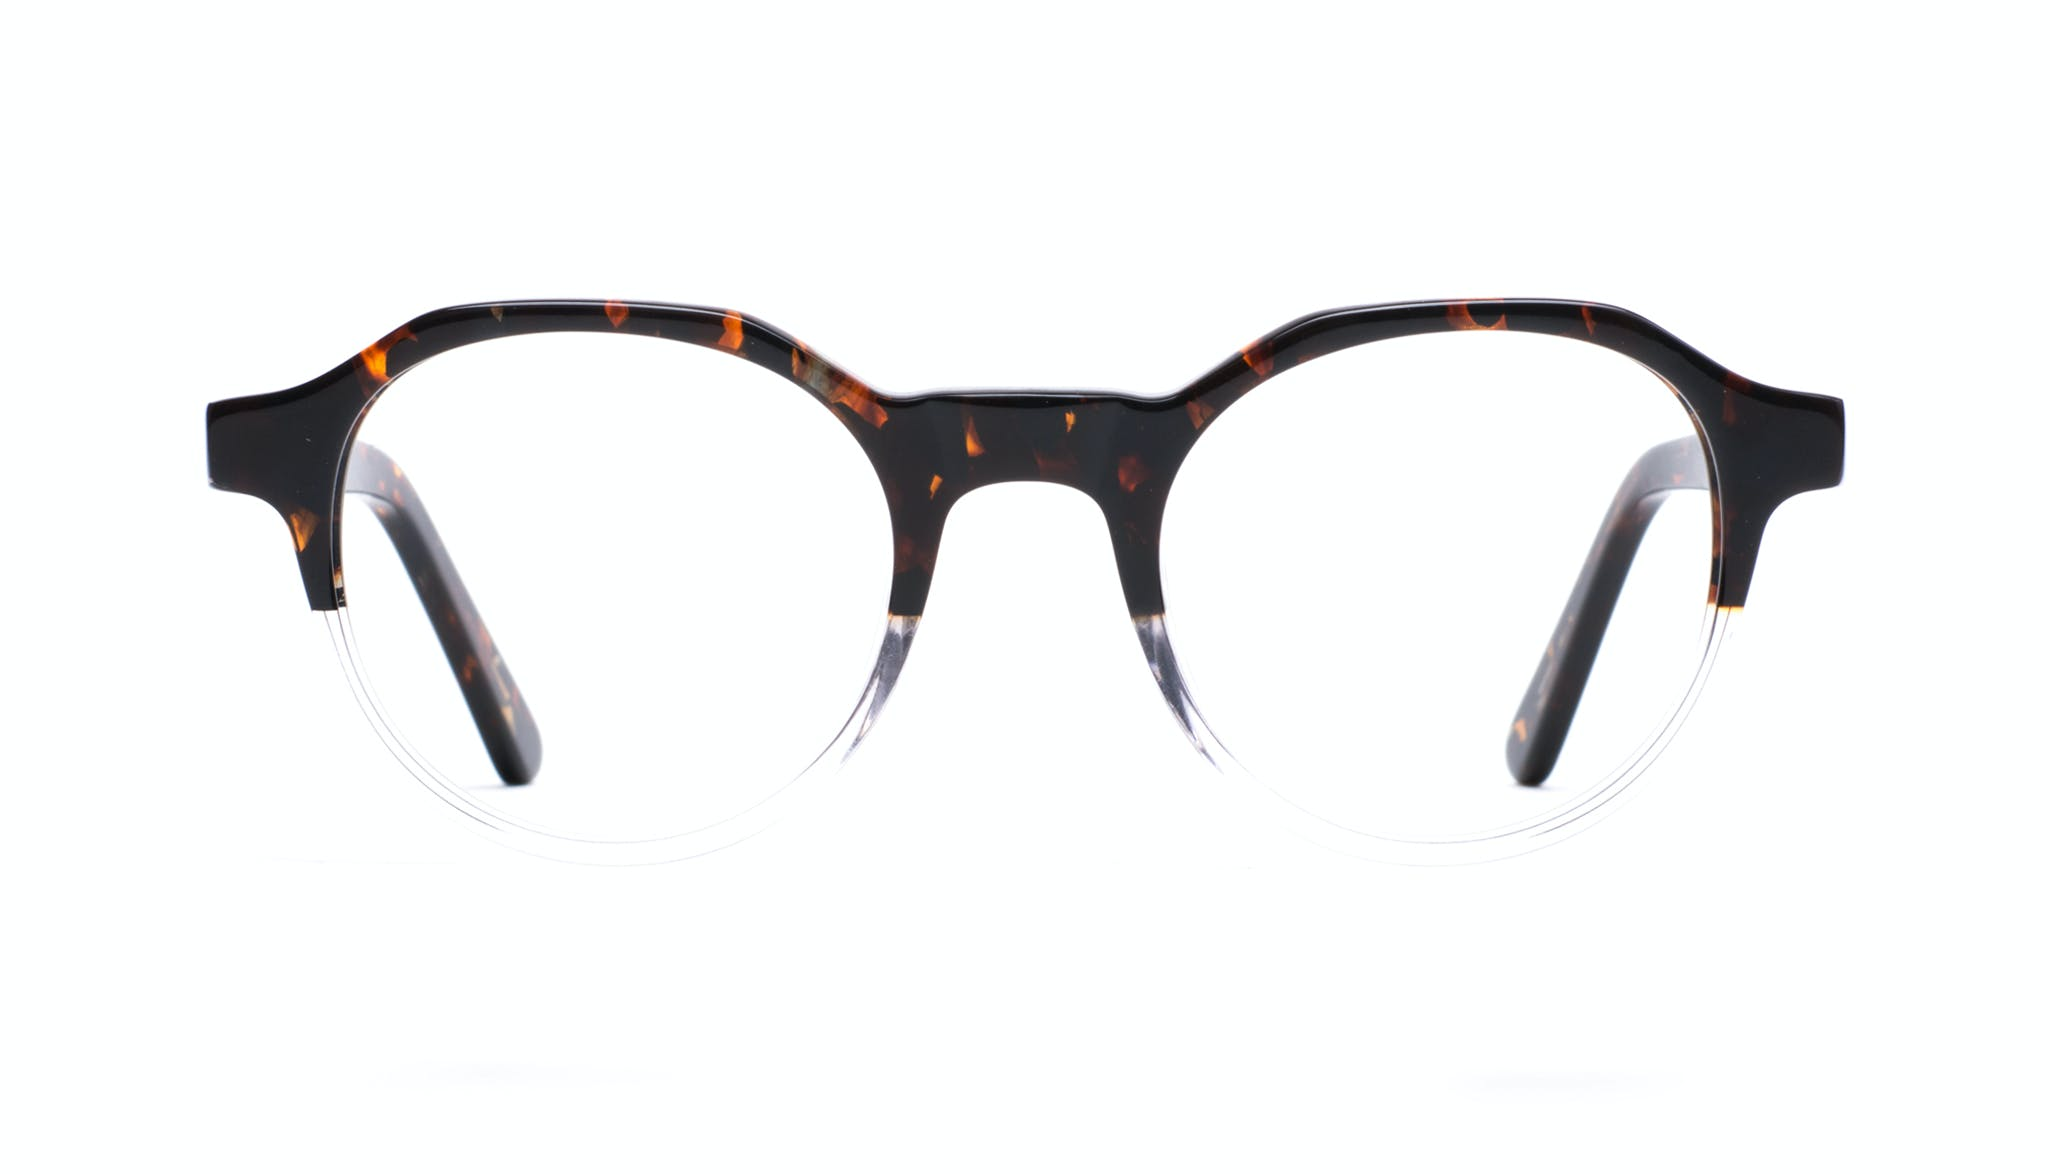 Affordable Fashion Glasses Round Eyeglasses Men Form Mahogany Clear Front